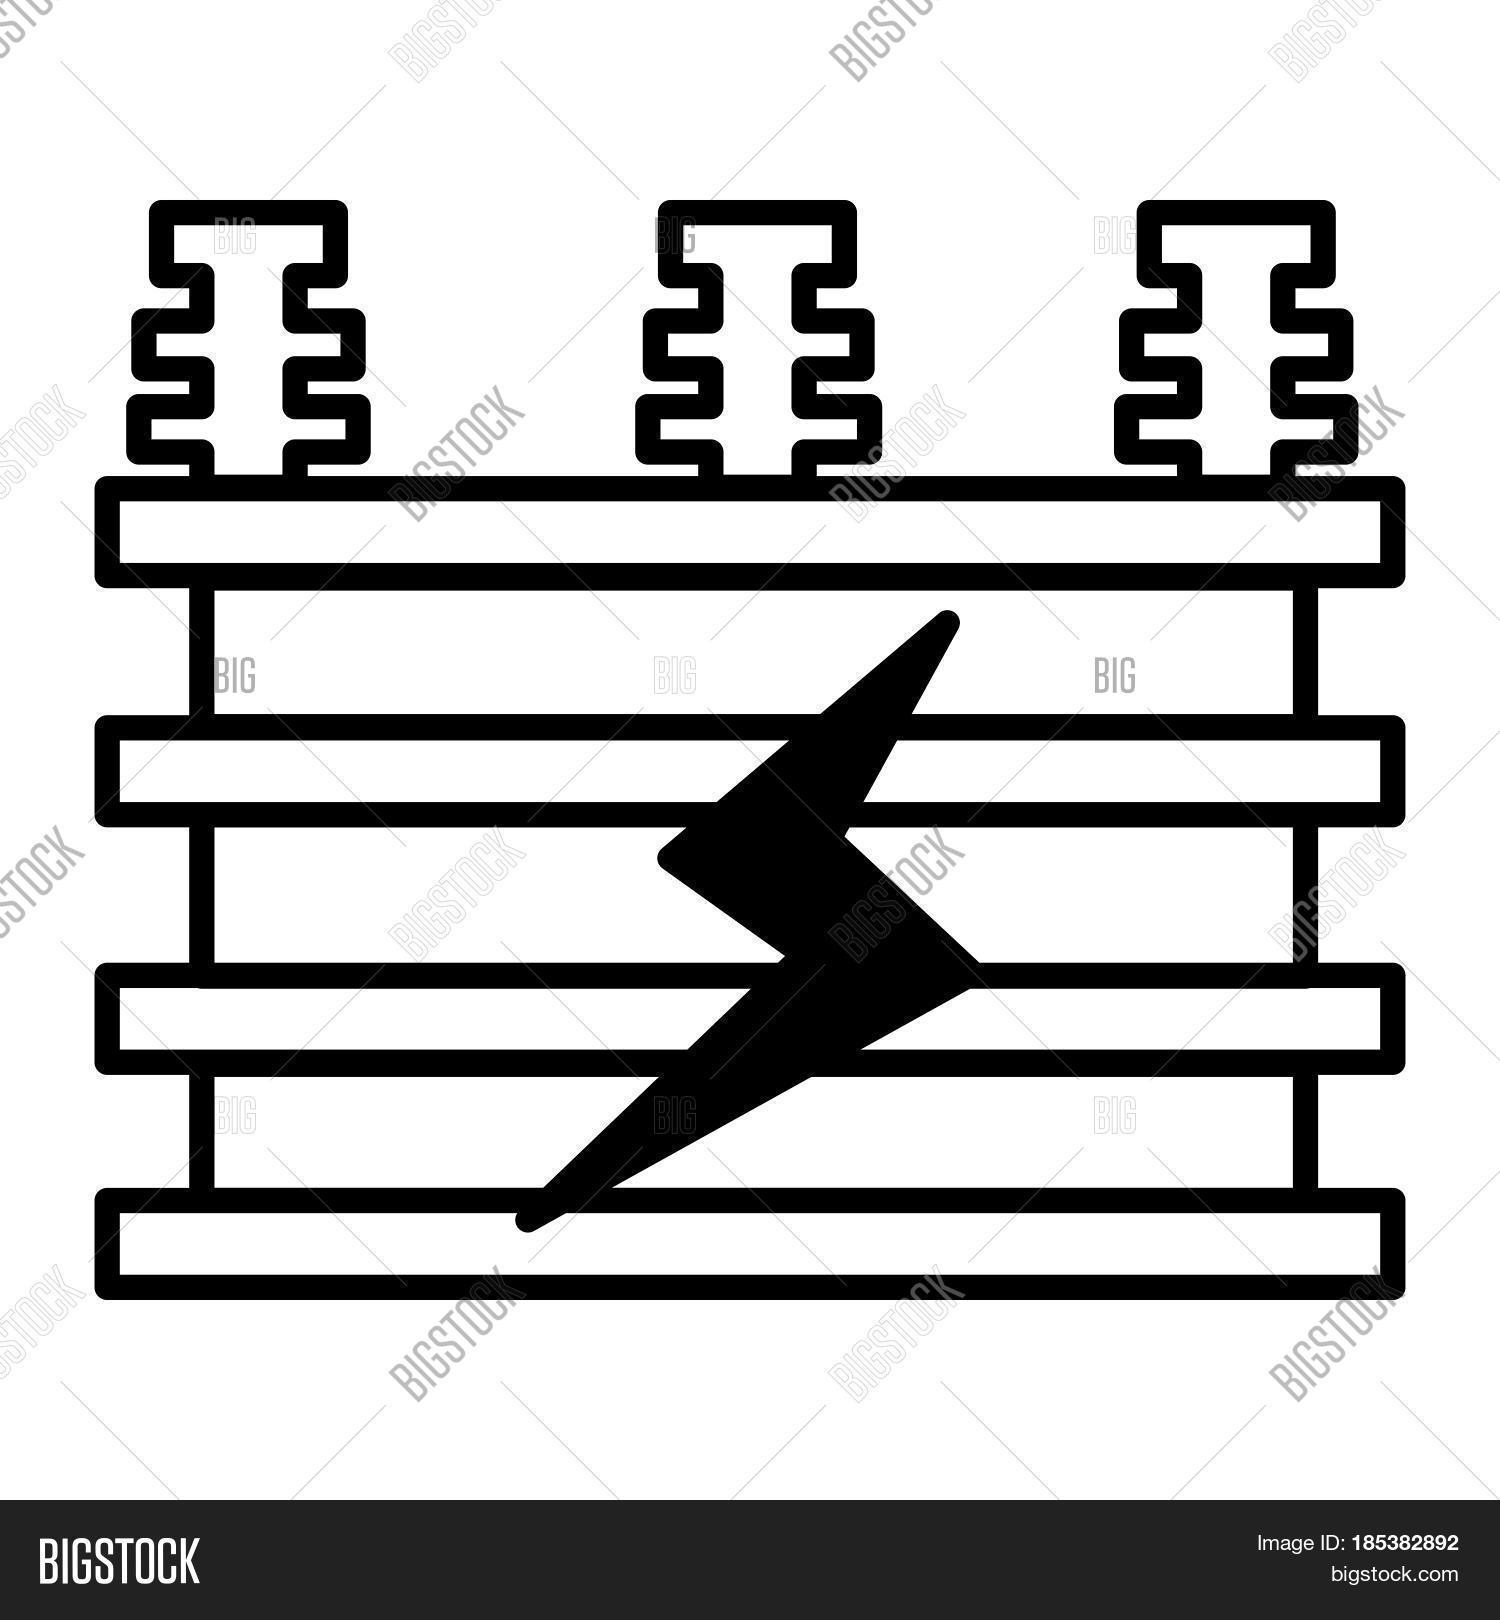 Thin Line Electrical Vector & Photo (Free Trial) | Bigstock